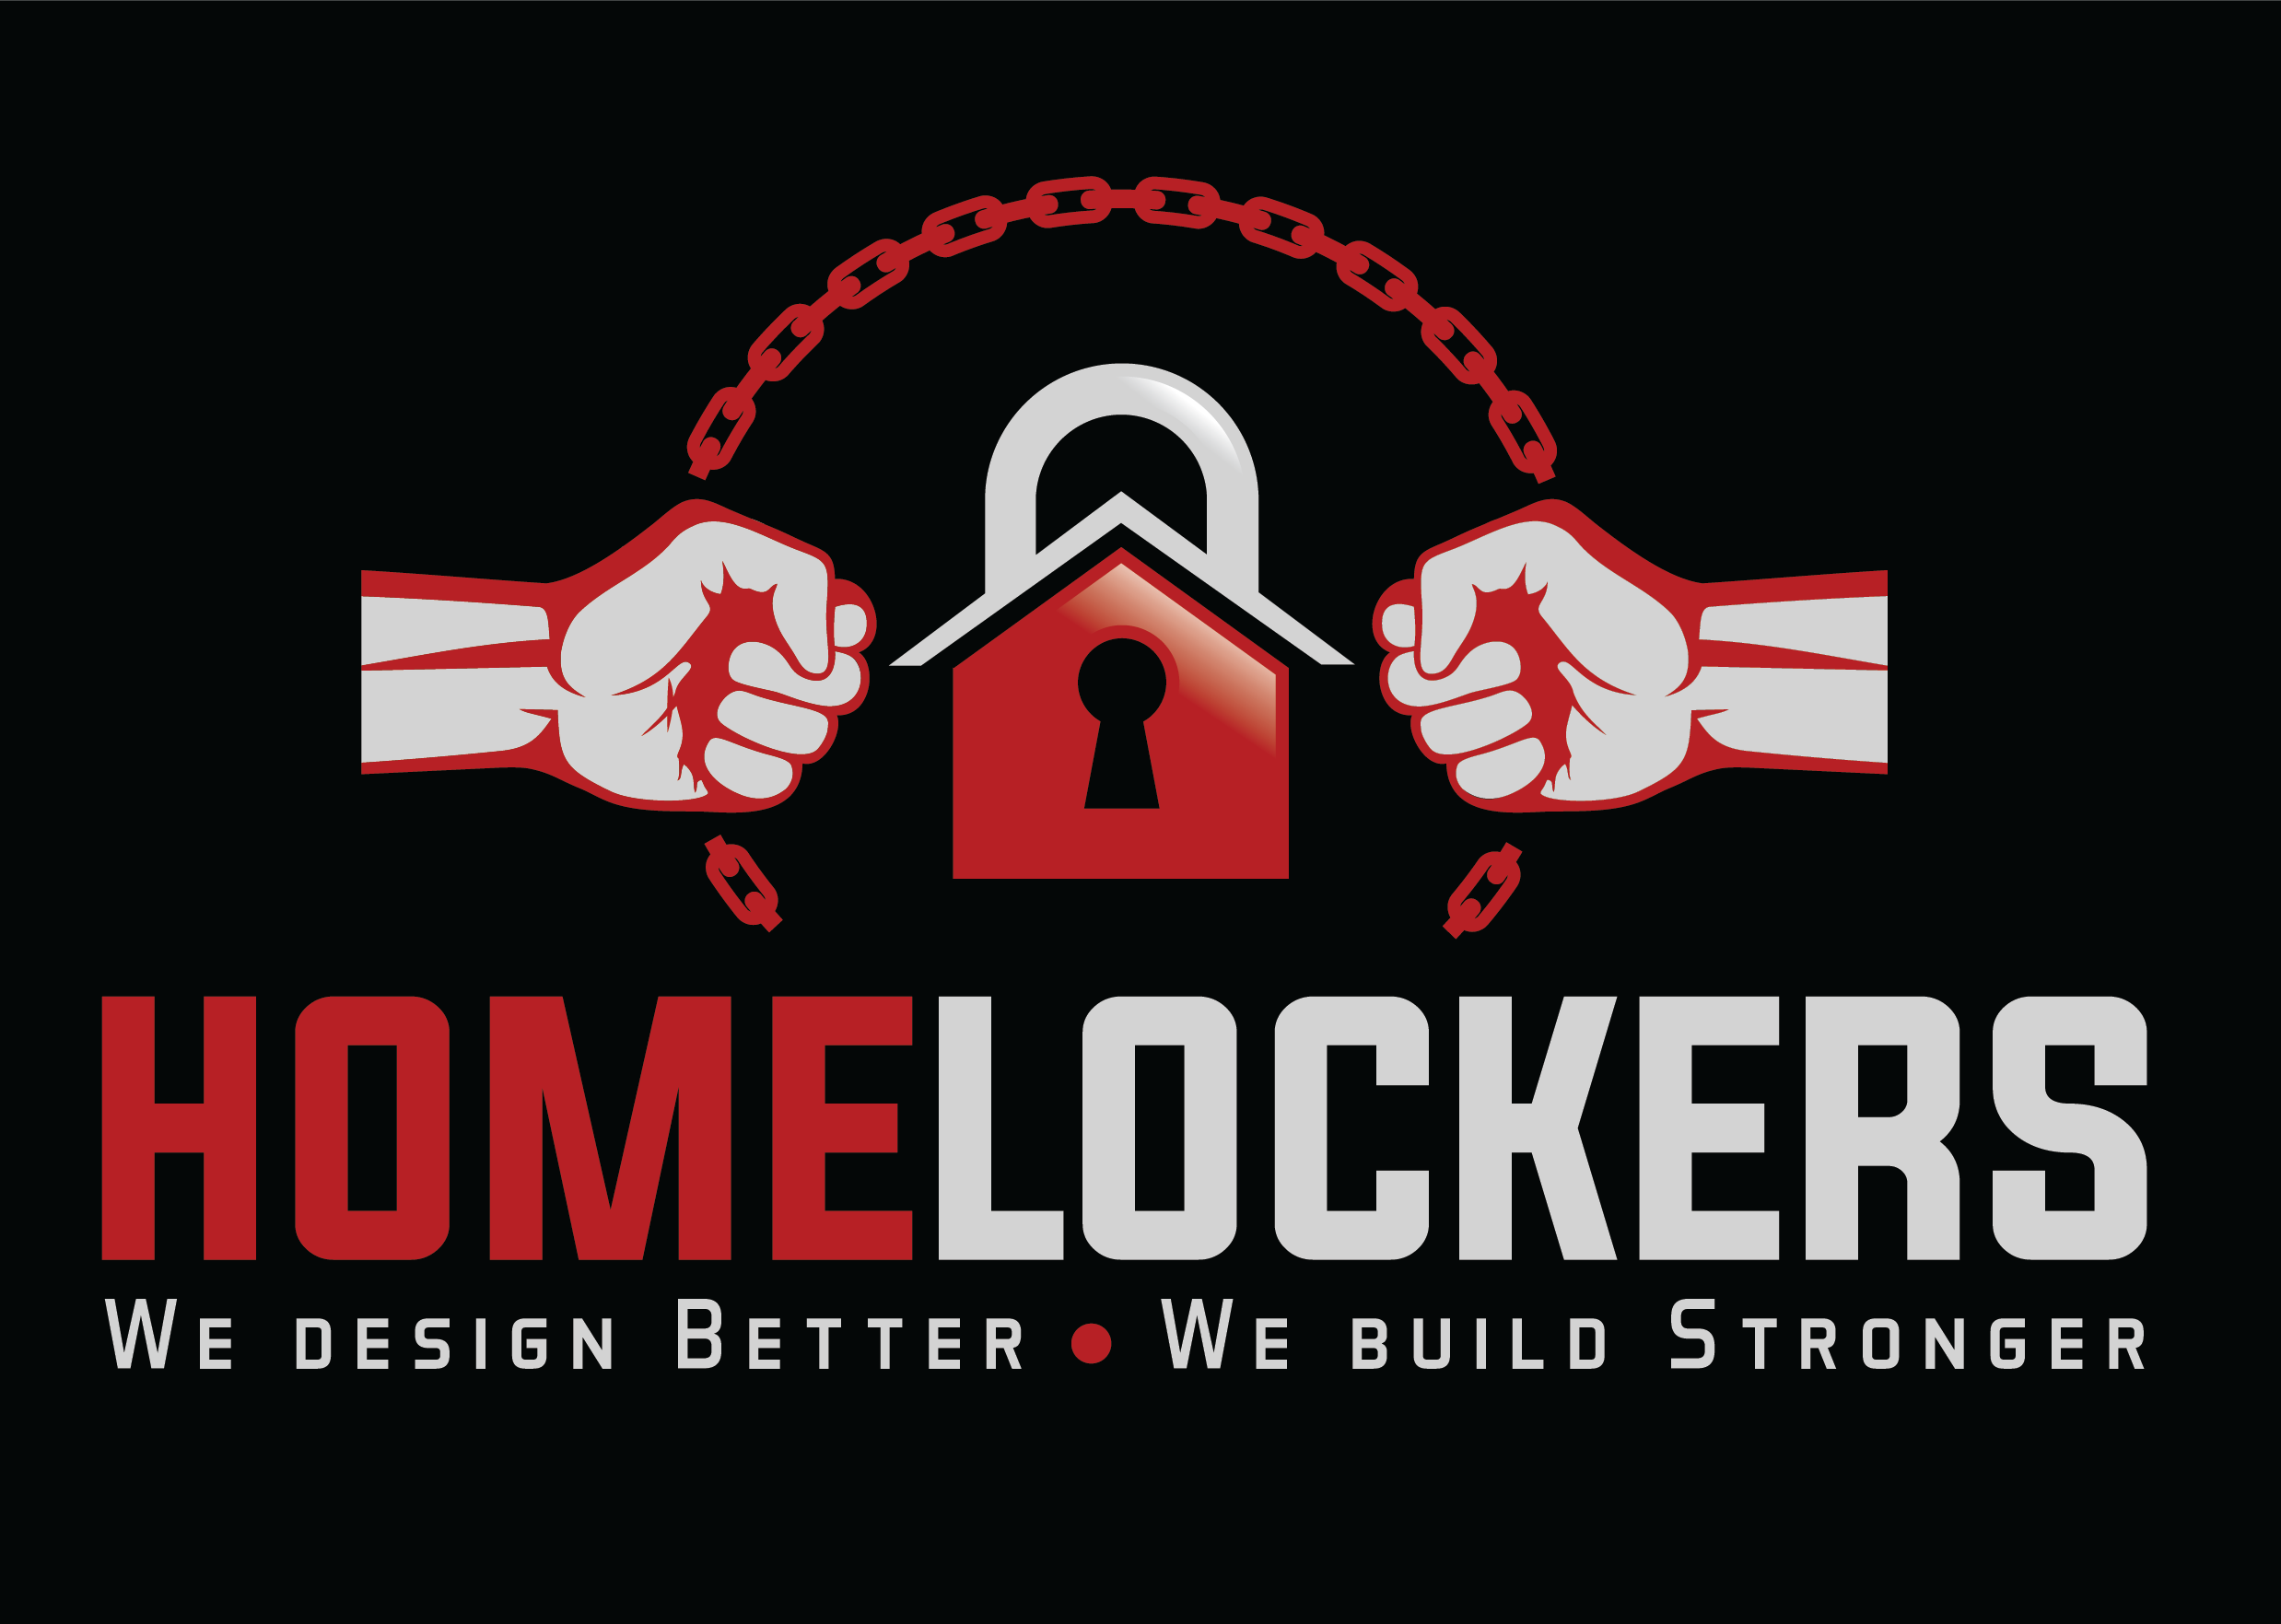 Home Lockers Construction and Development